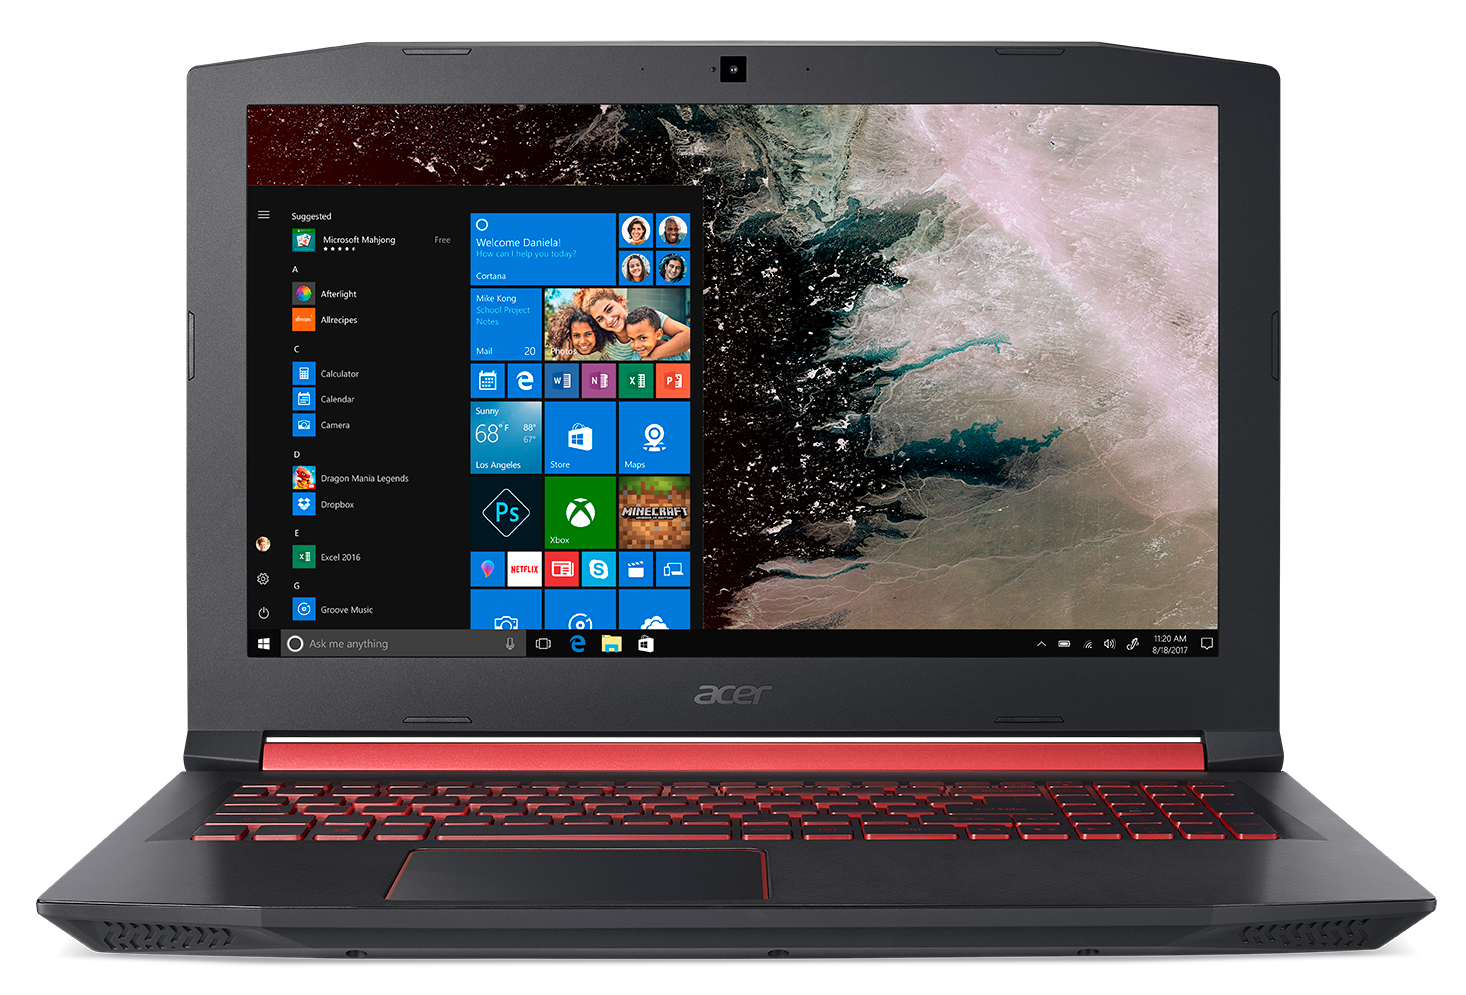 Amd Ryzen And Polaris Will Power The Acer Nitro 5 For Just